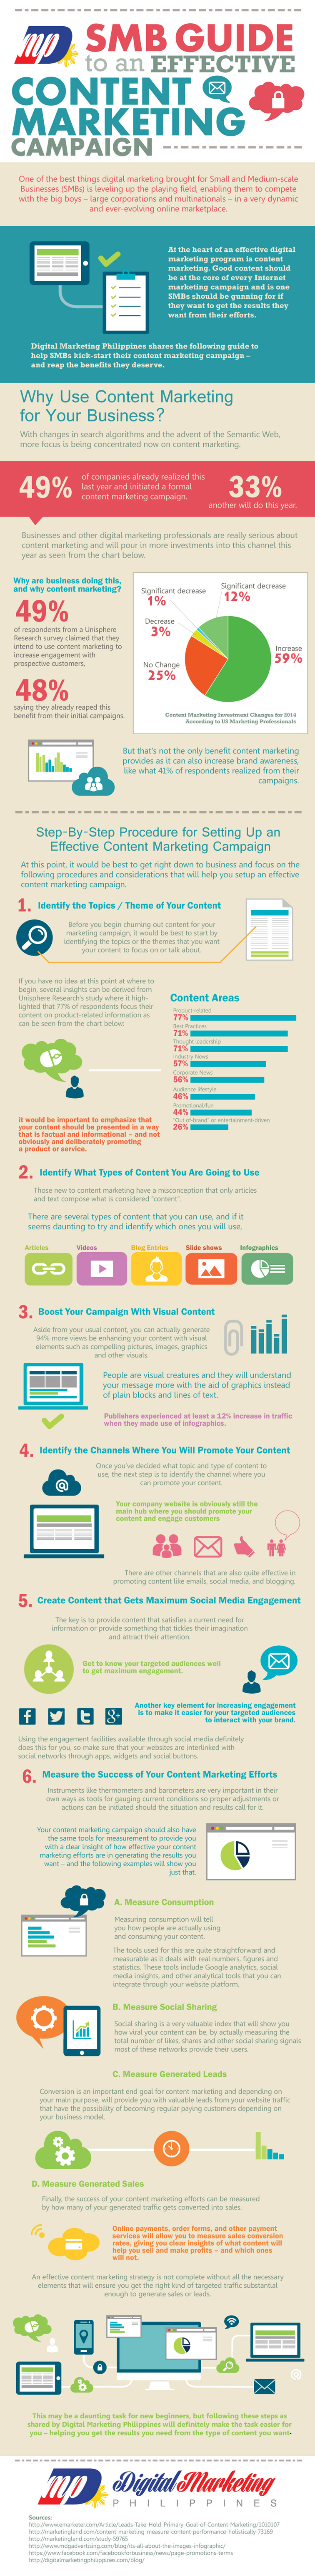 Effective_Content_Marketing_Campaign-for-smb